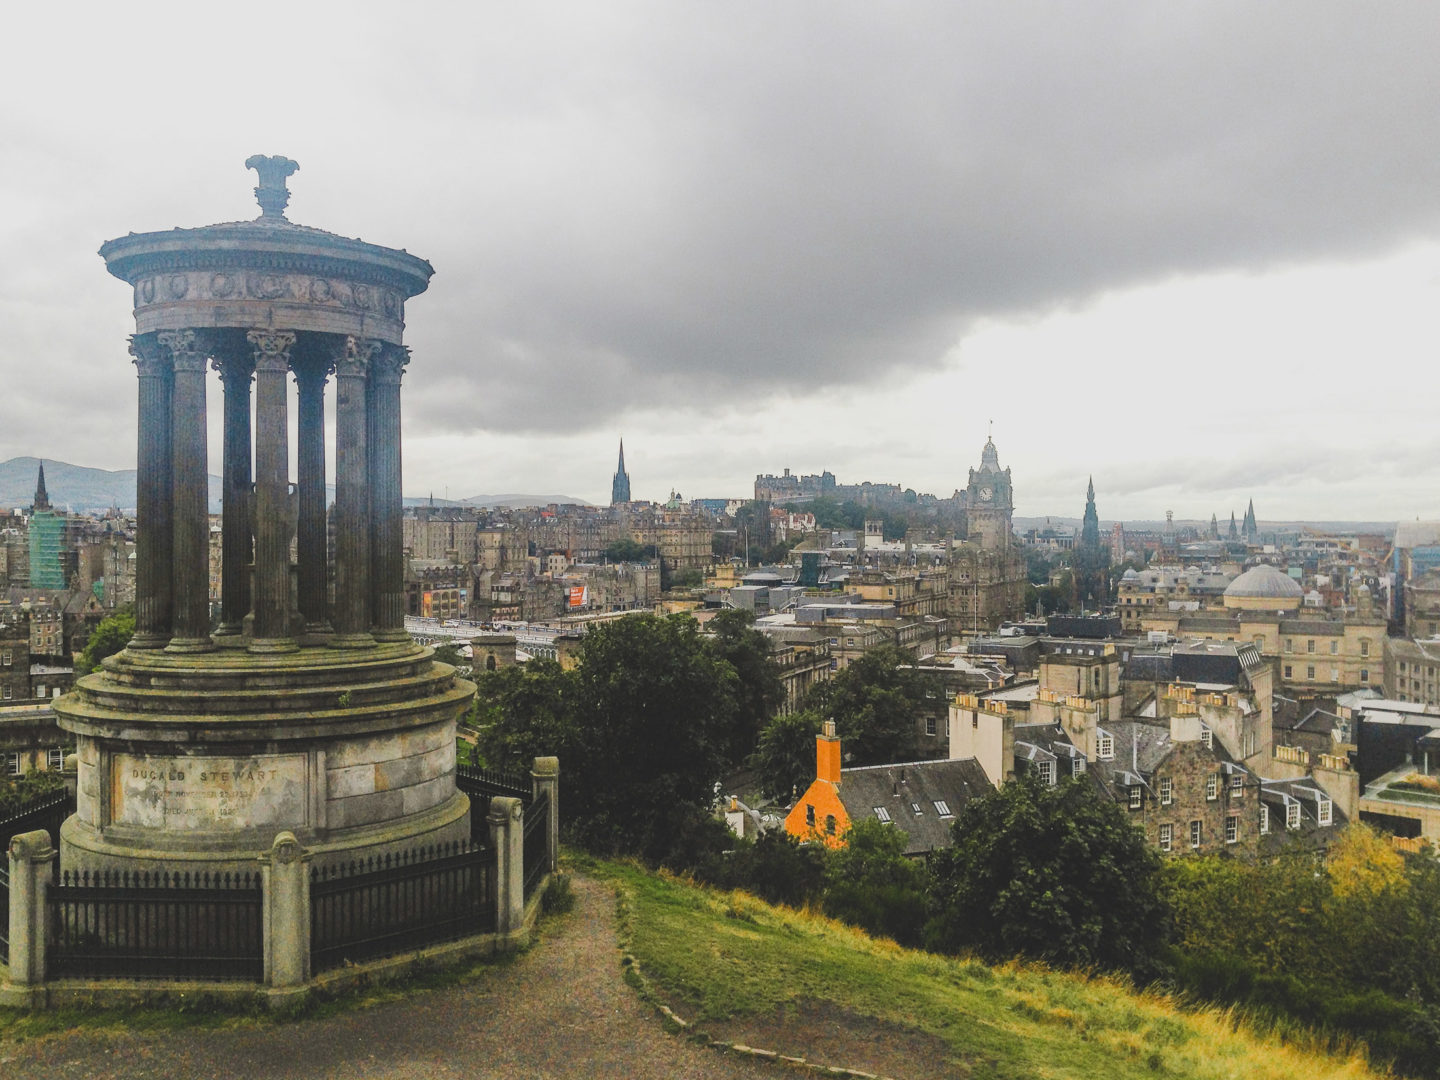 carlton hill and views of Edinburgh, Scotland